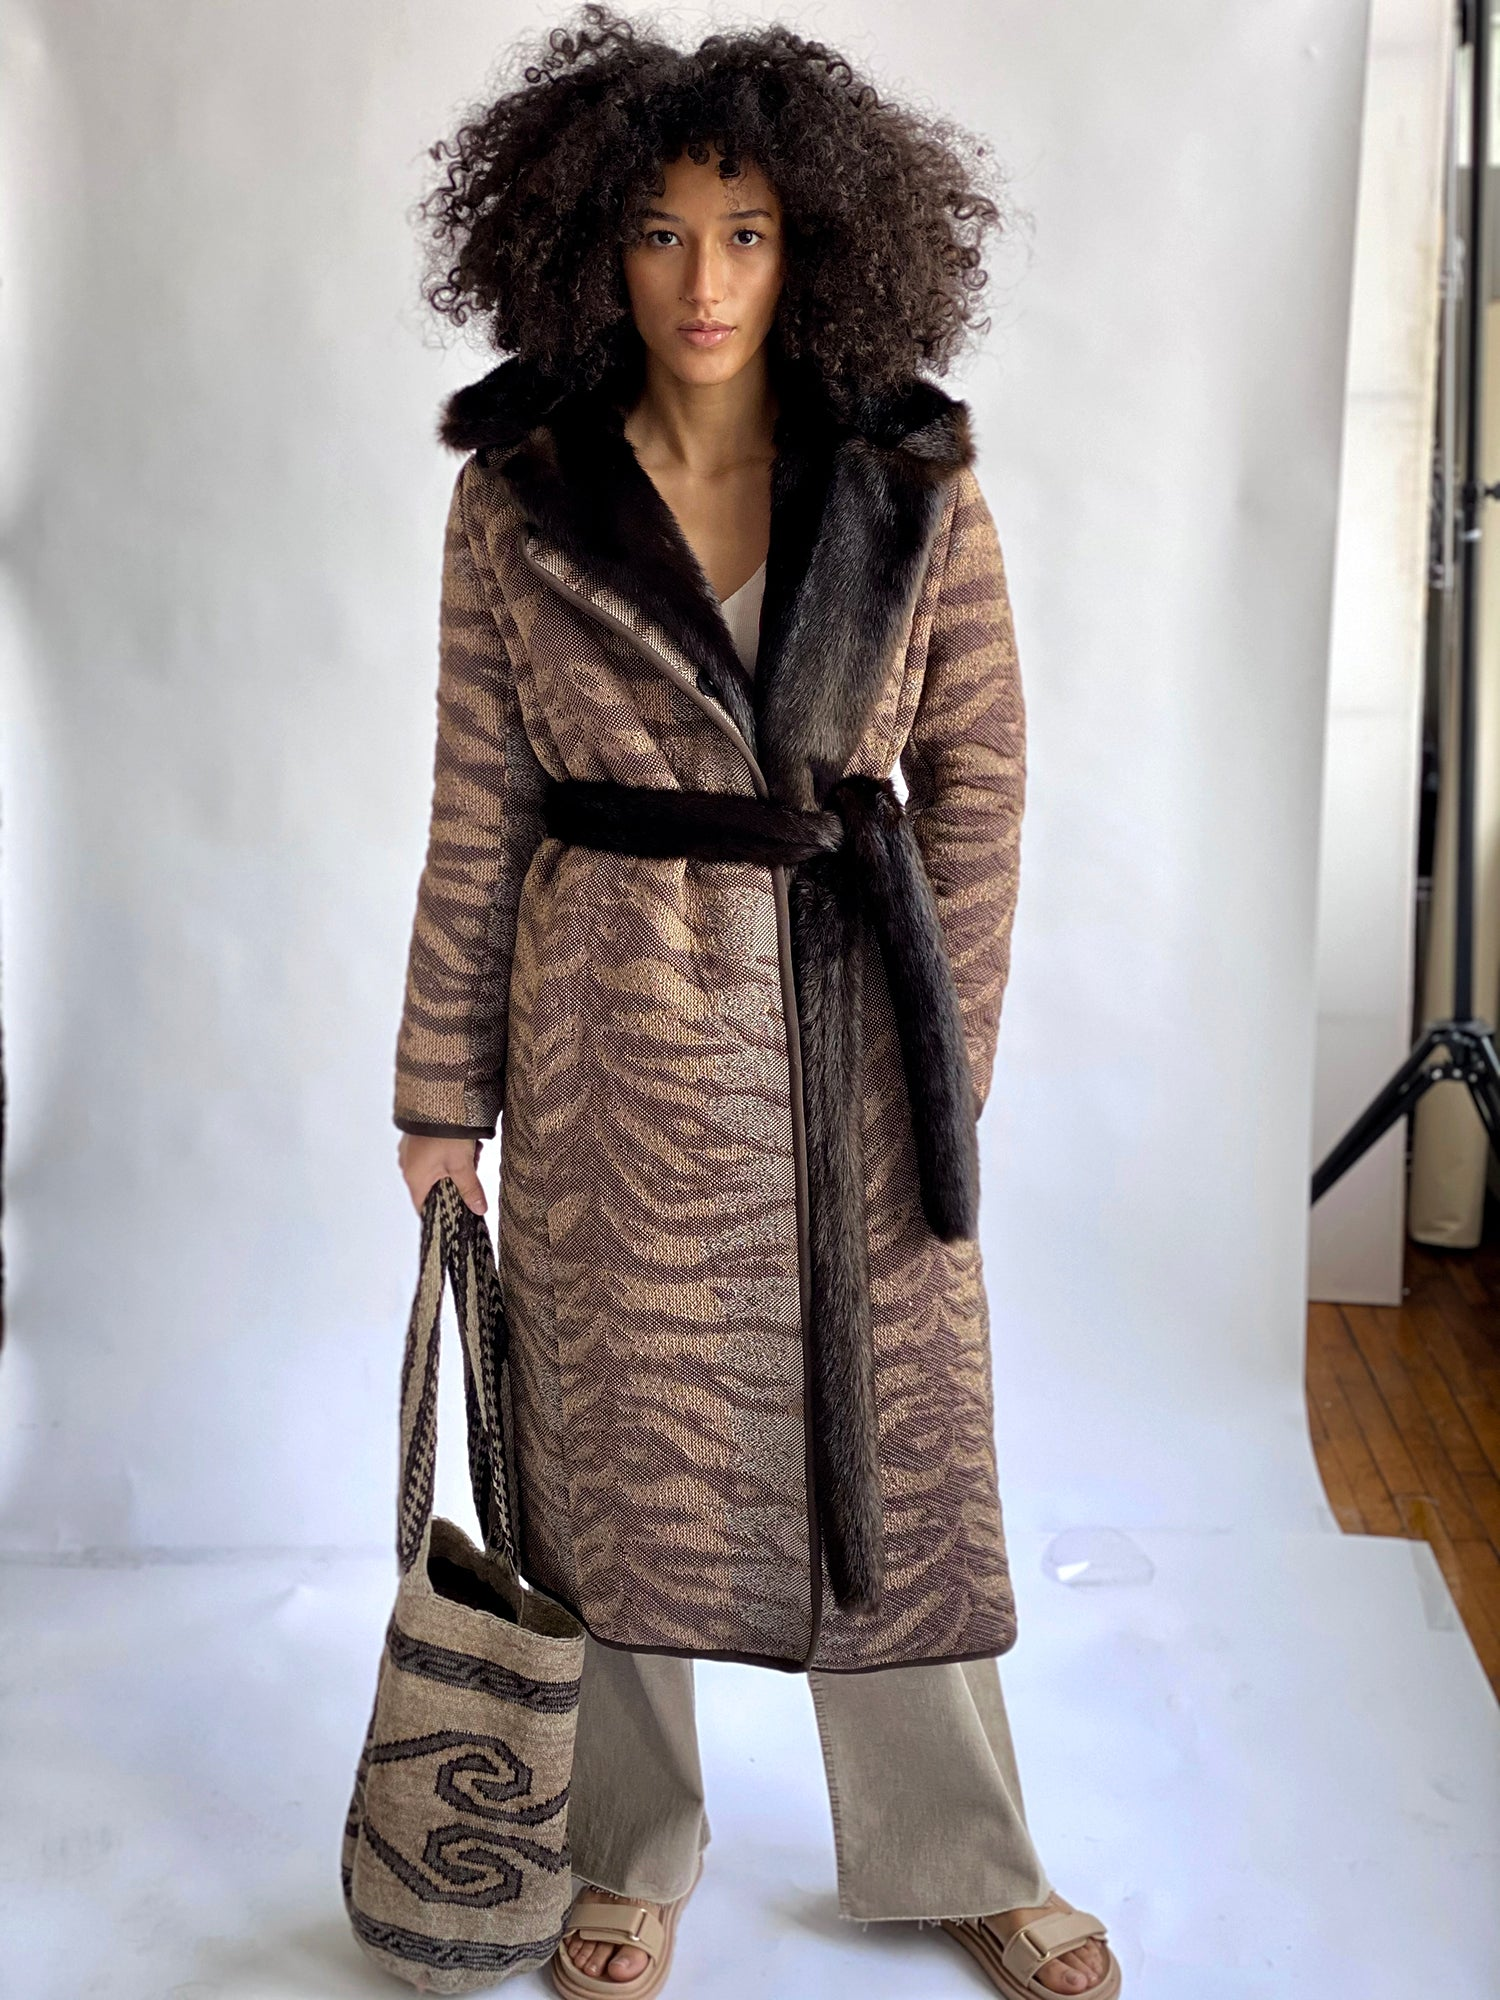 products/tiger_longcoat_bded76e1-453d-4e57-b69f-c62203df1581.jpg